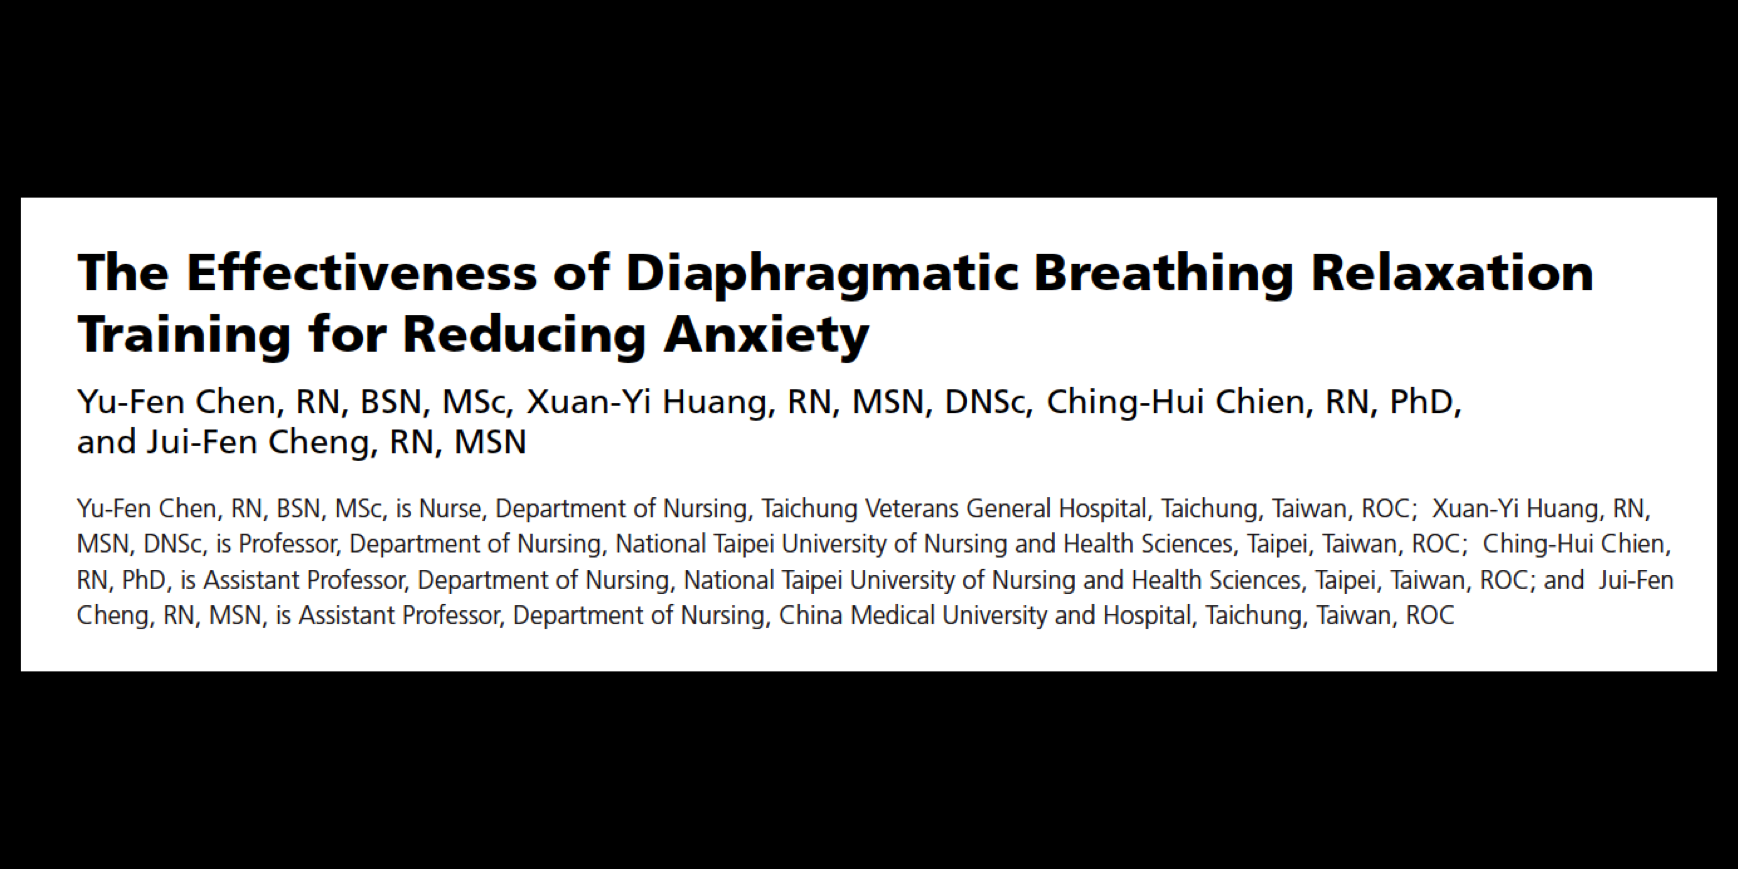 - Diaphragmatic breathing improves subjective and physiological indicators of anxiety